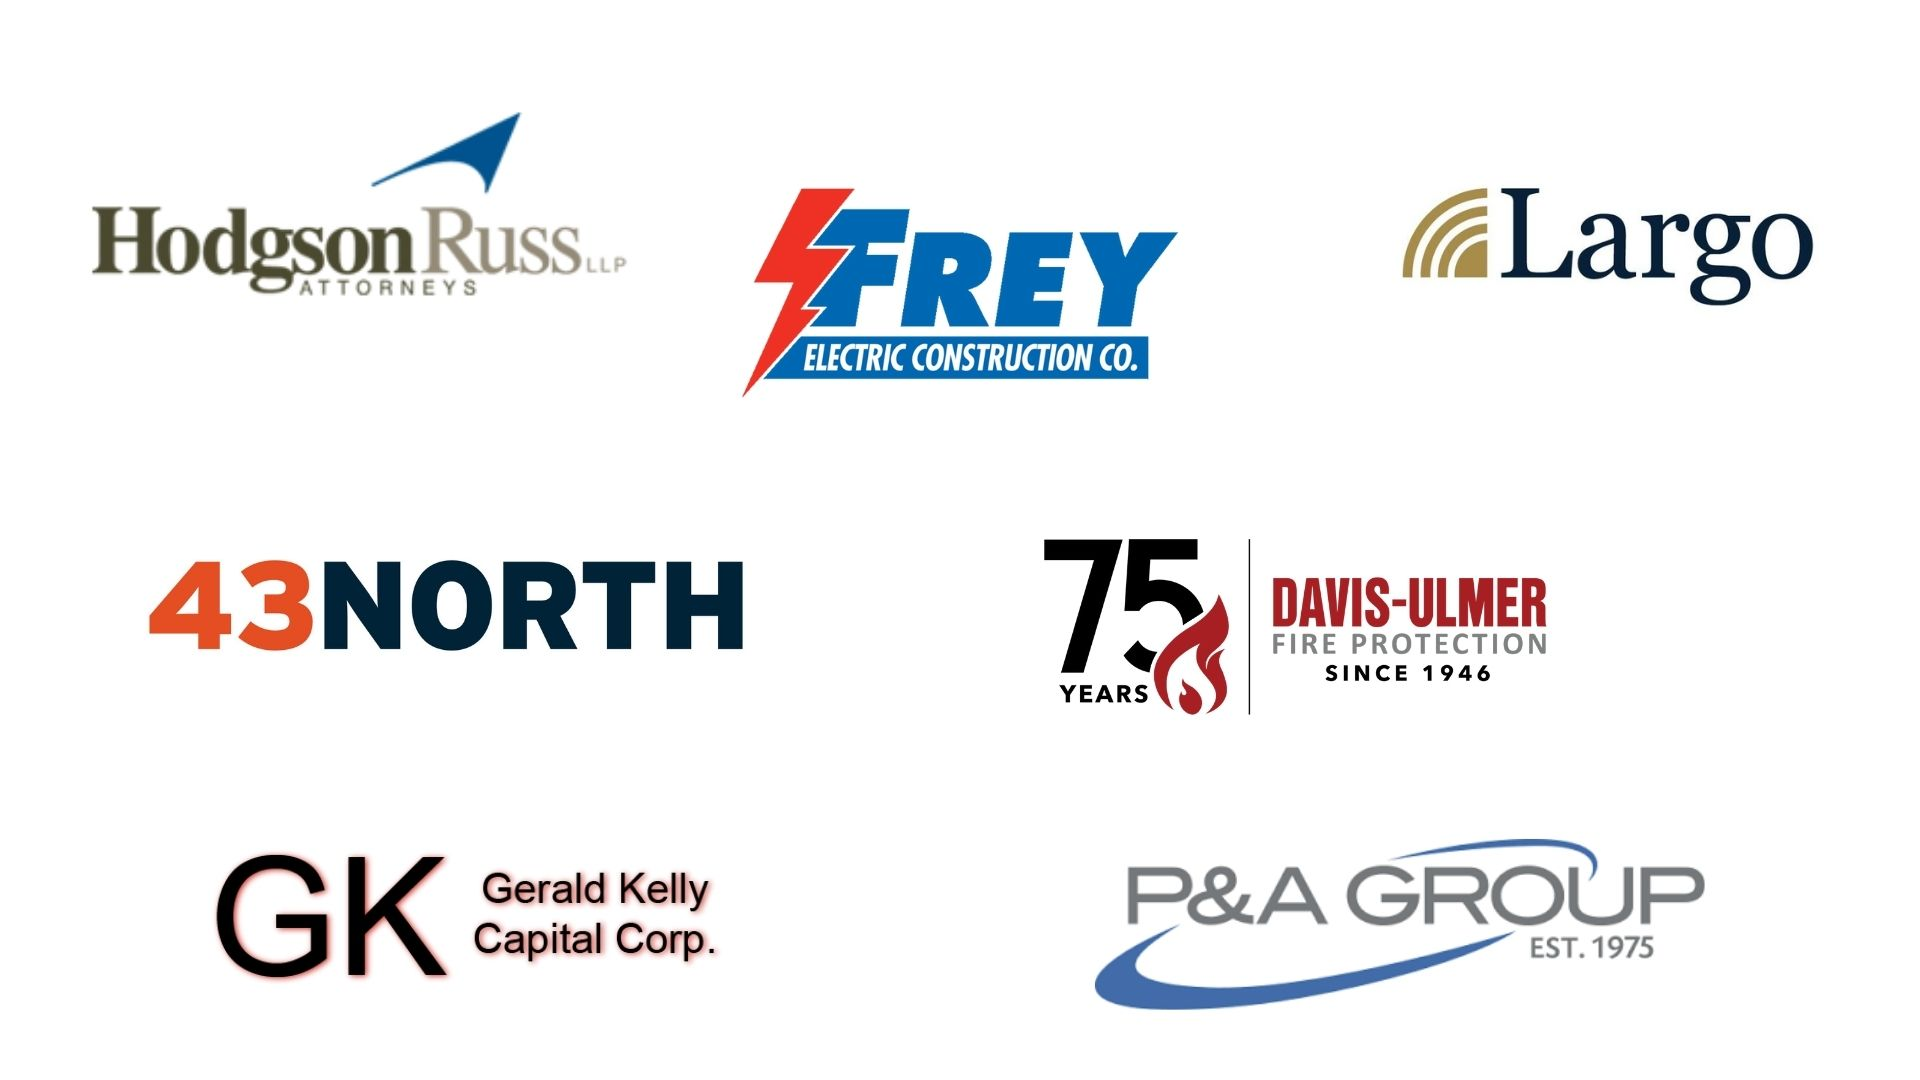 Image contains the logos of local businesses - Hodgson Russ, Frey Electric Construction, Largo Capital, 43 North, Davis-Ulmer Fire Protection, Gerald Kelly Capital, and P&A Group